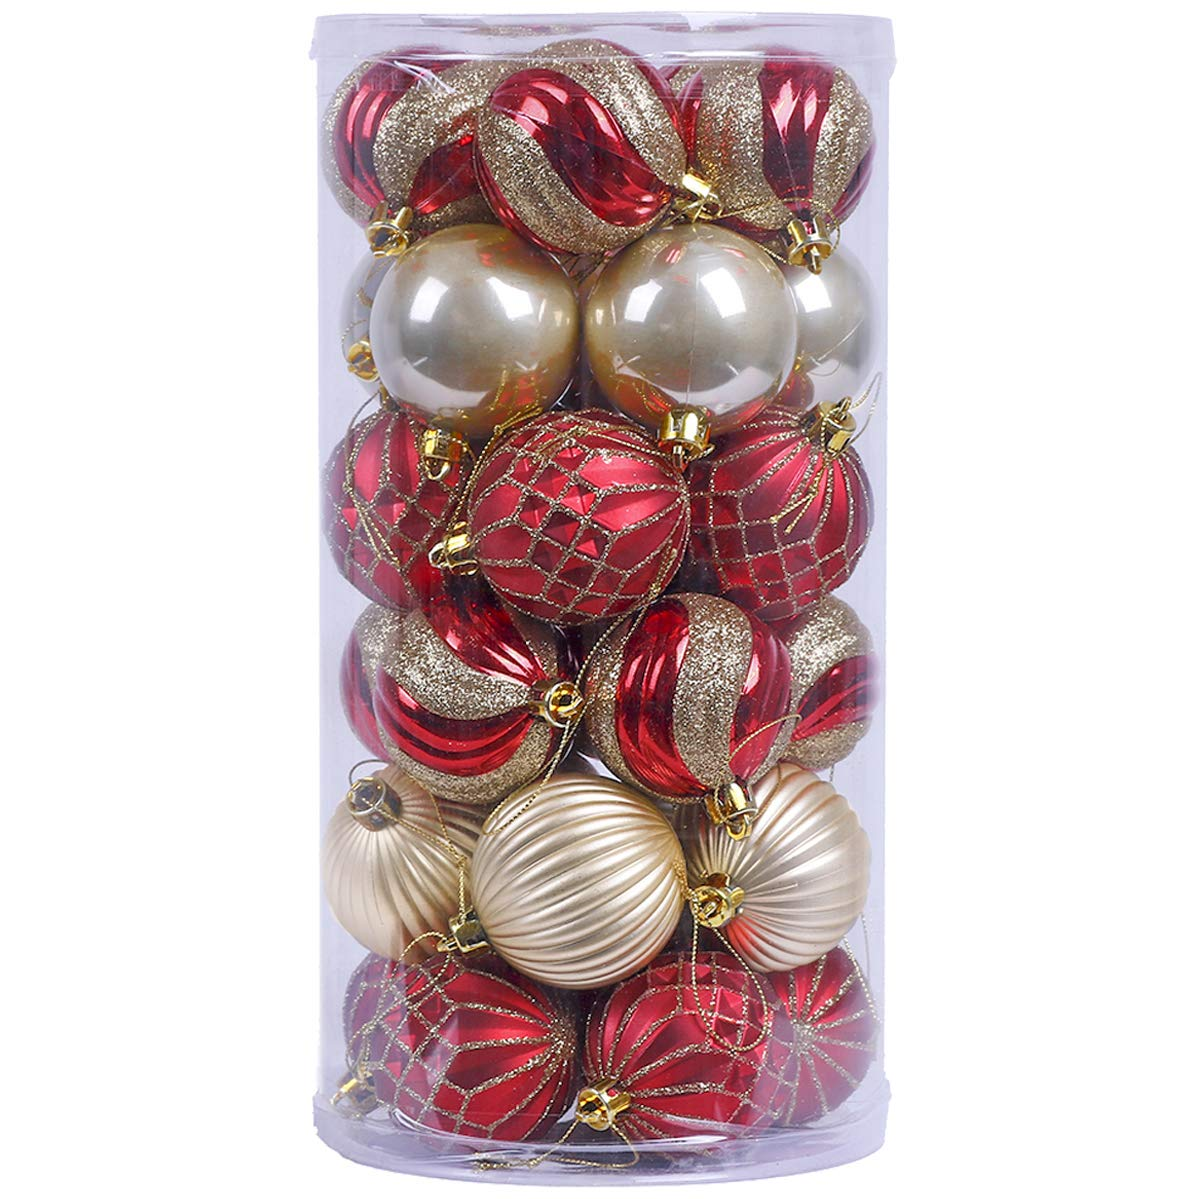 V&M VALERY MADELYN 30ct Shatterproof Christmas Ball Ornaments Decorations, 2.36inch/6CM Hanging Ornament for Christmas Holiday Or Christmas Tree Decoration with String Pre-Tied (Luxury Red and Gold)